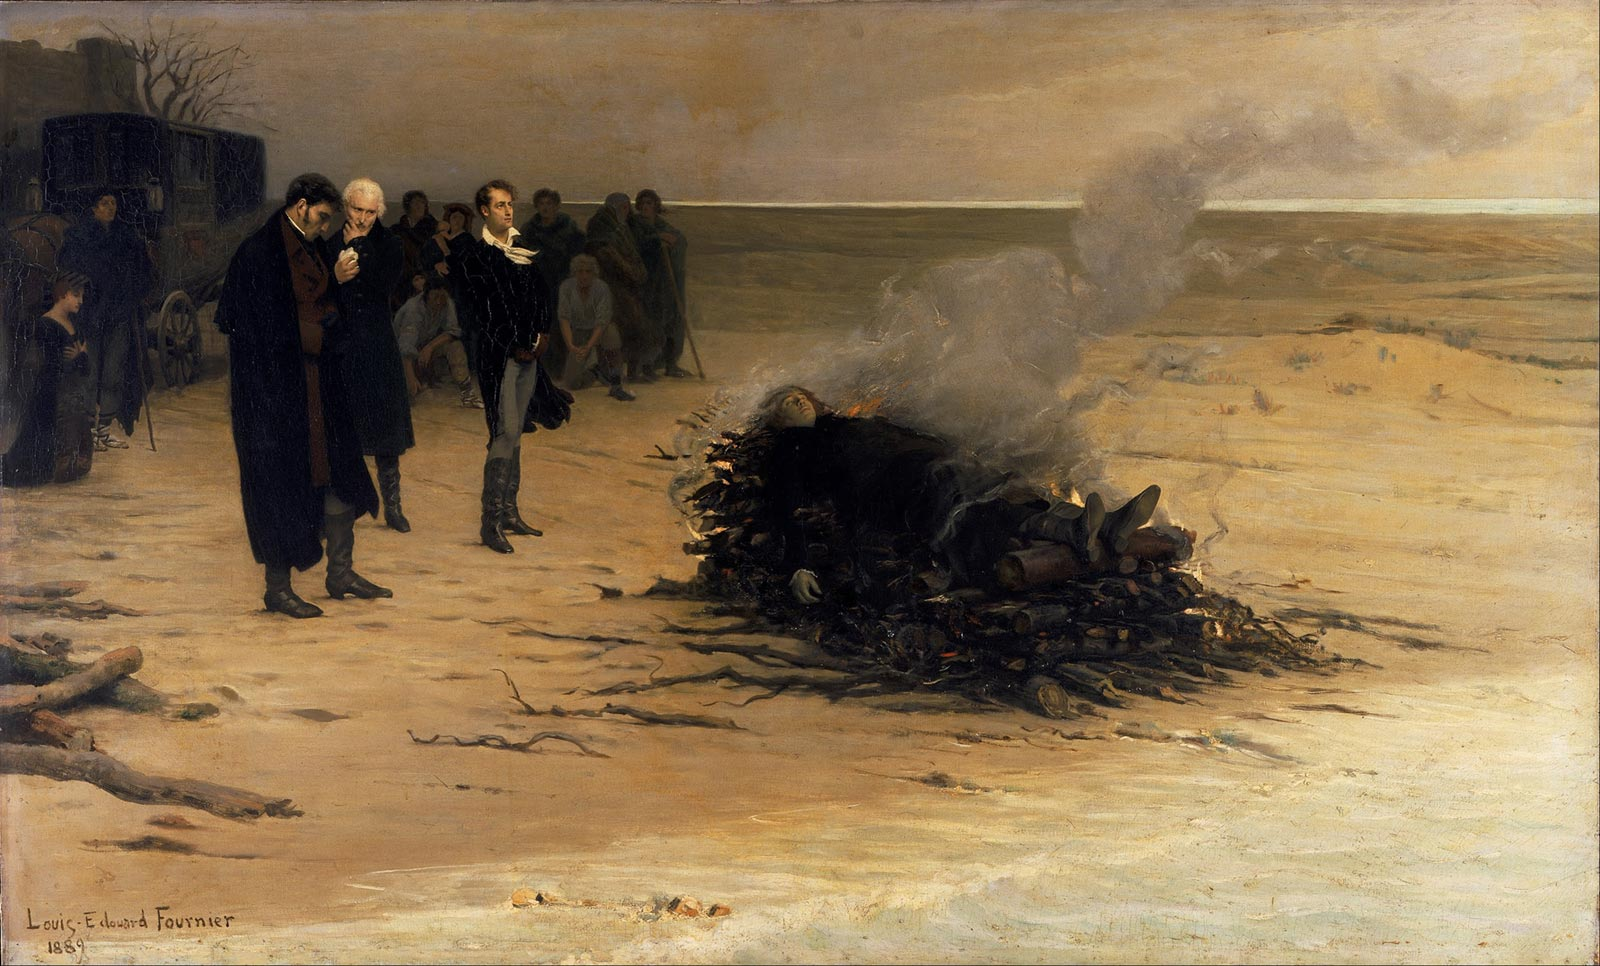 The Funeral of Shelley by Louis Édouard Fournier (1889)